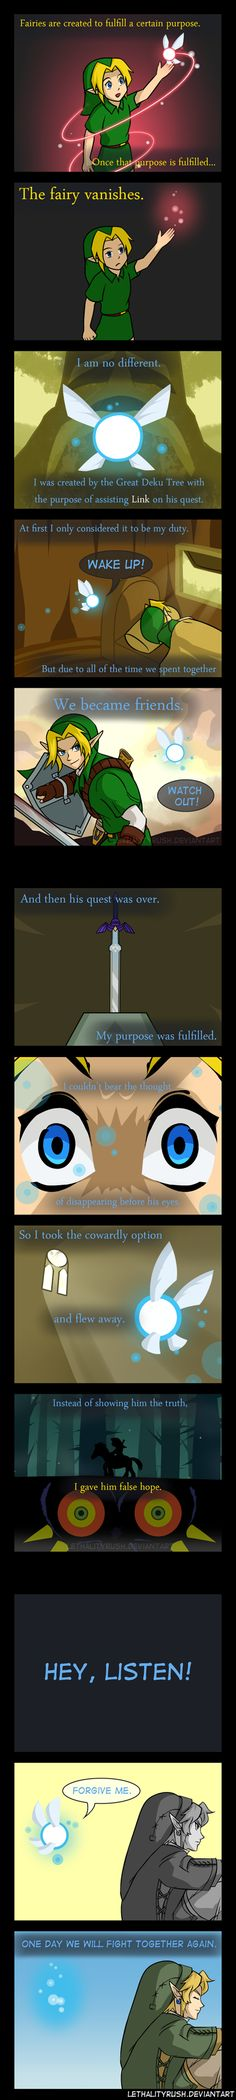 Never Thought of Navi in This Way Before #Comic #LegendofZelda